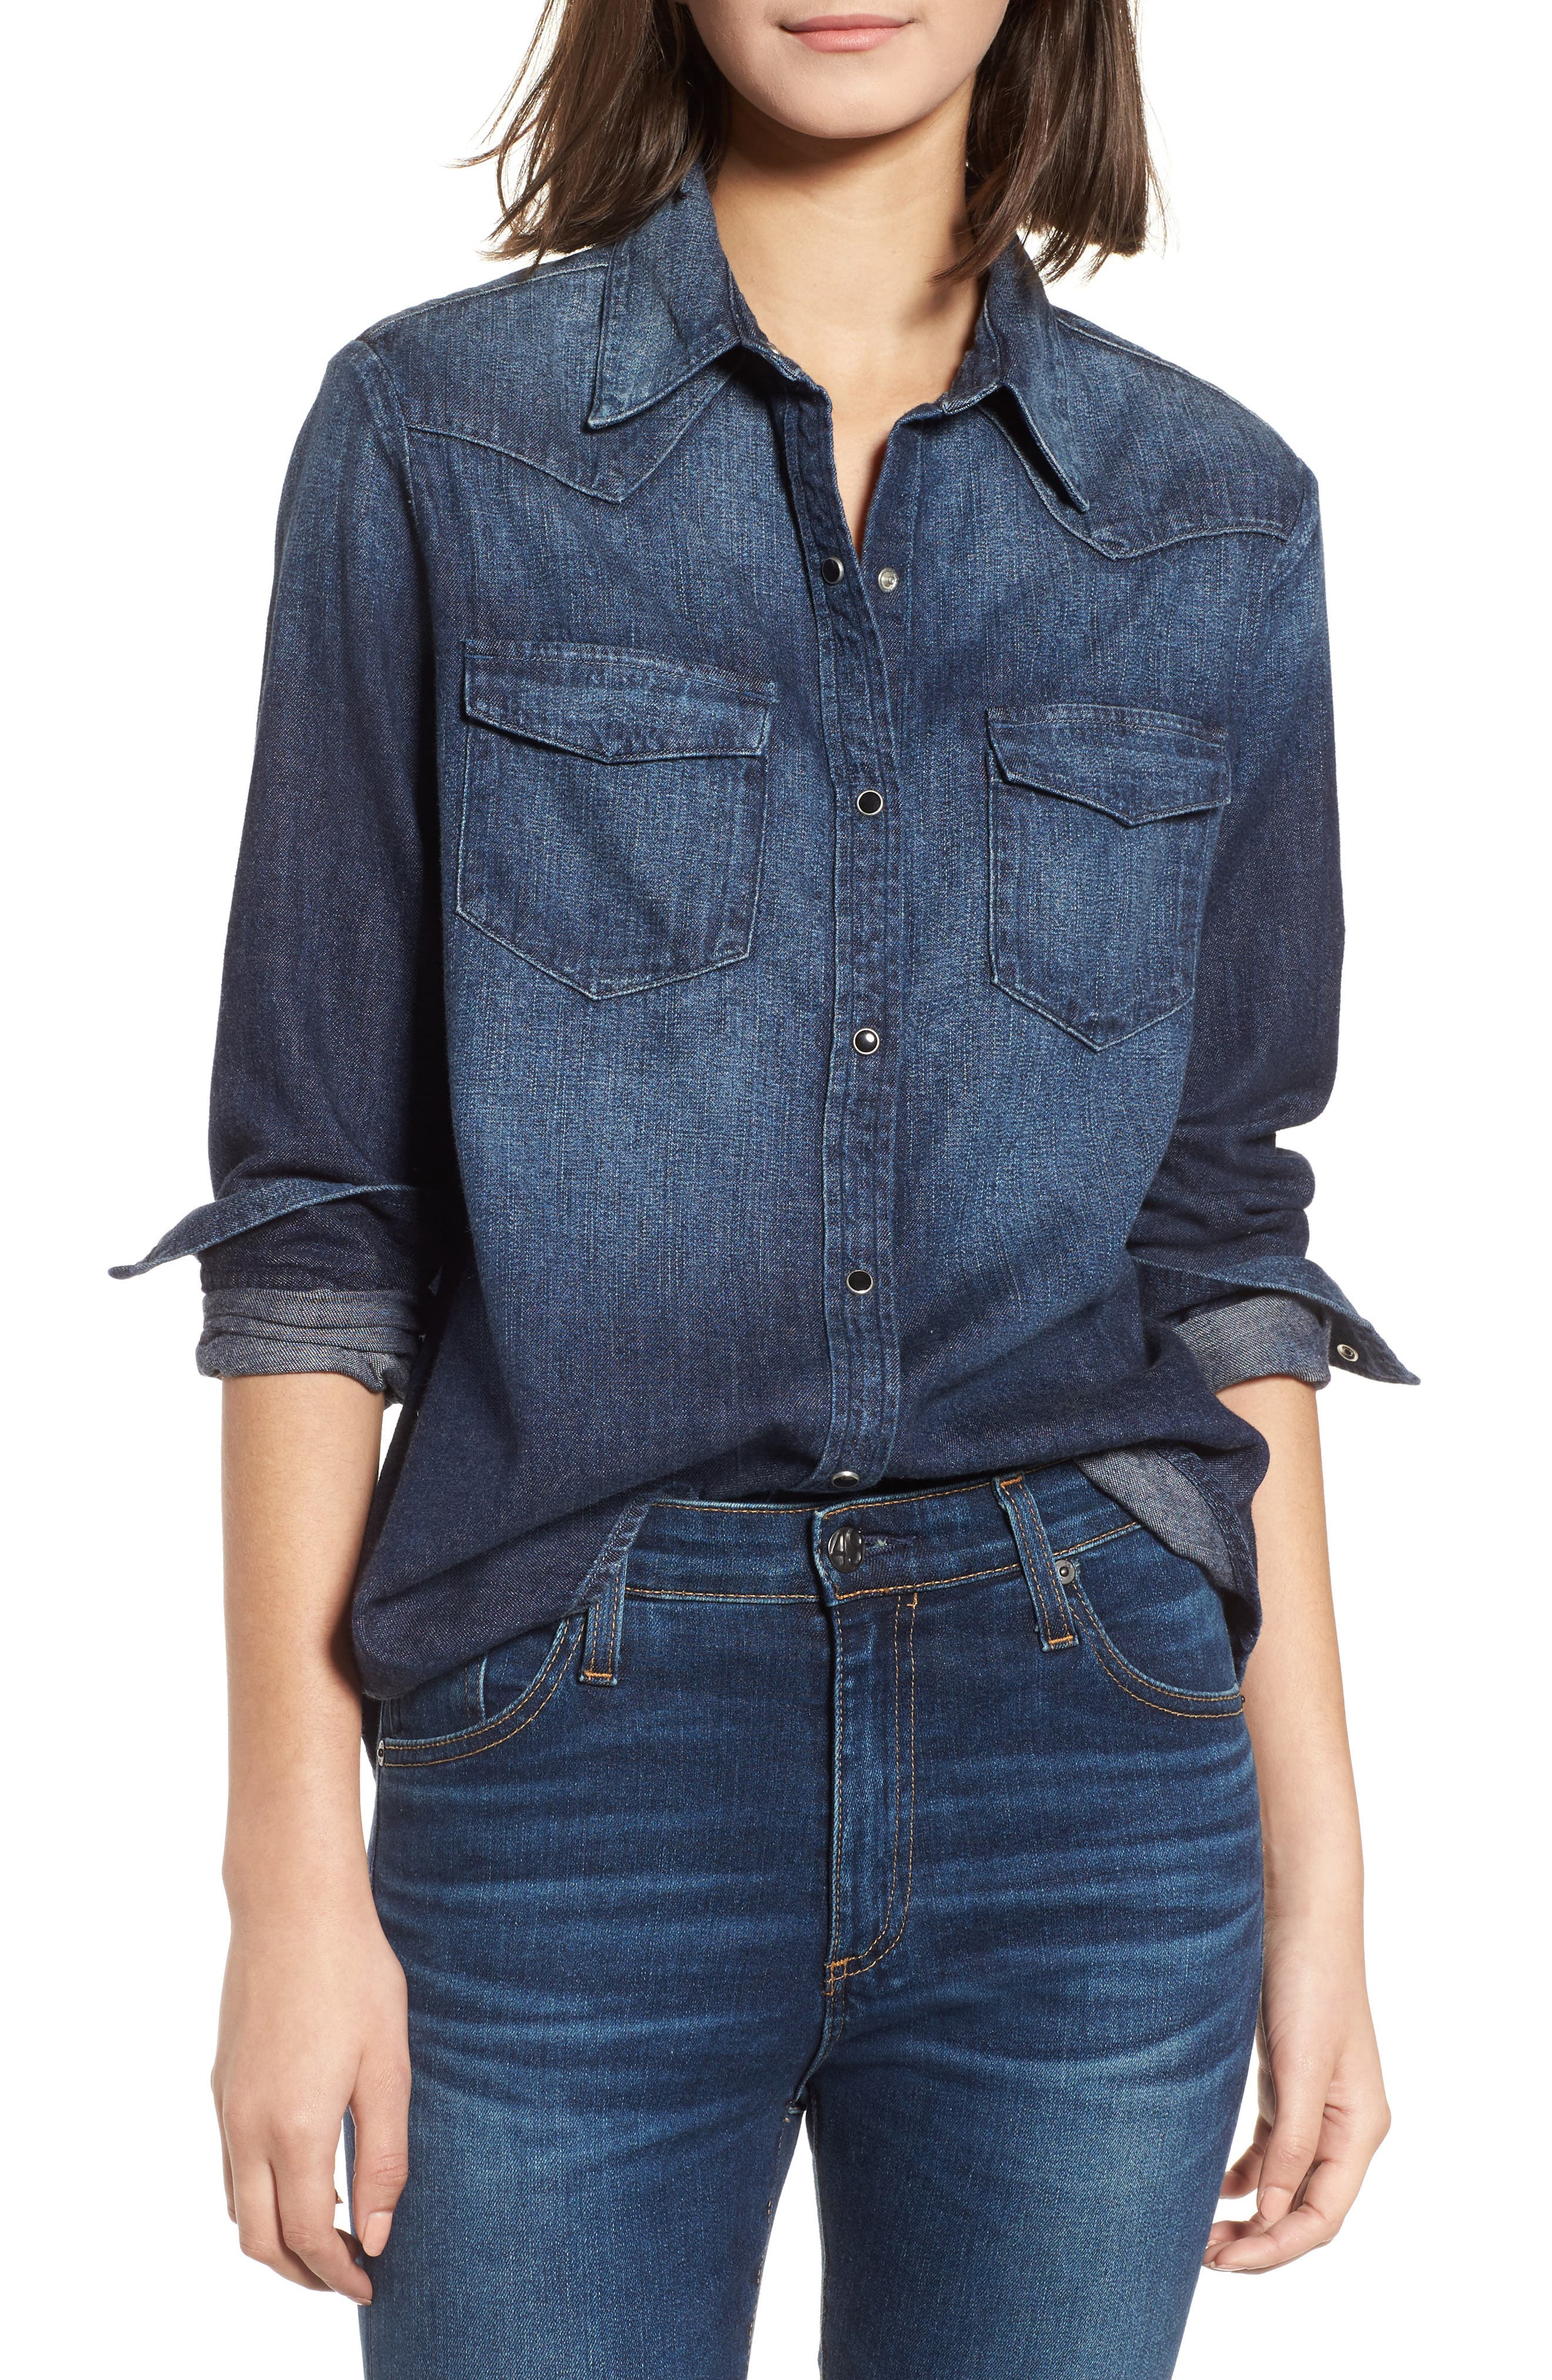 Deanna Denim Shirt,                             Main thumbnail 1, color,                             Timeless